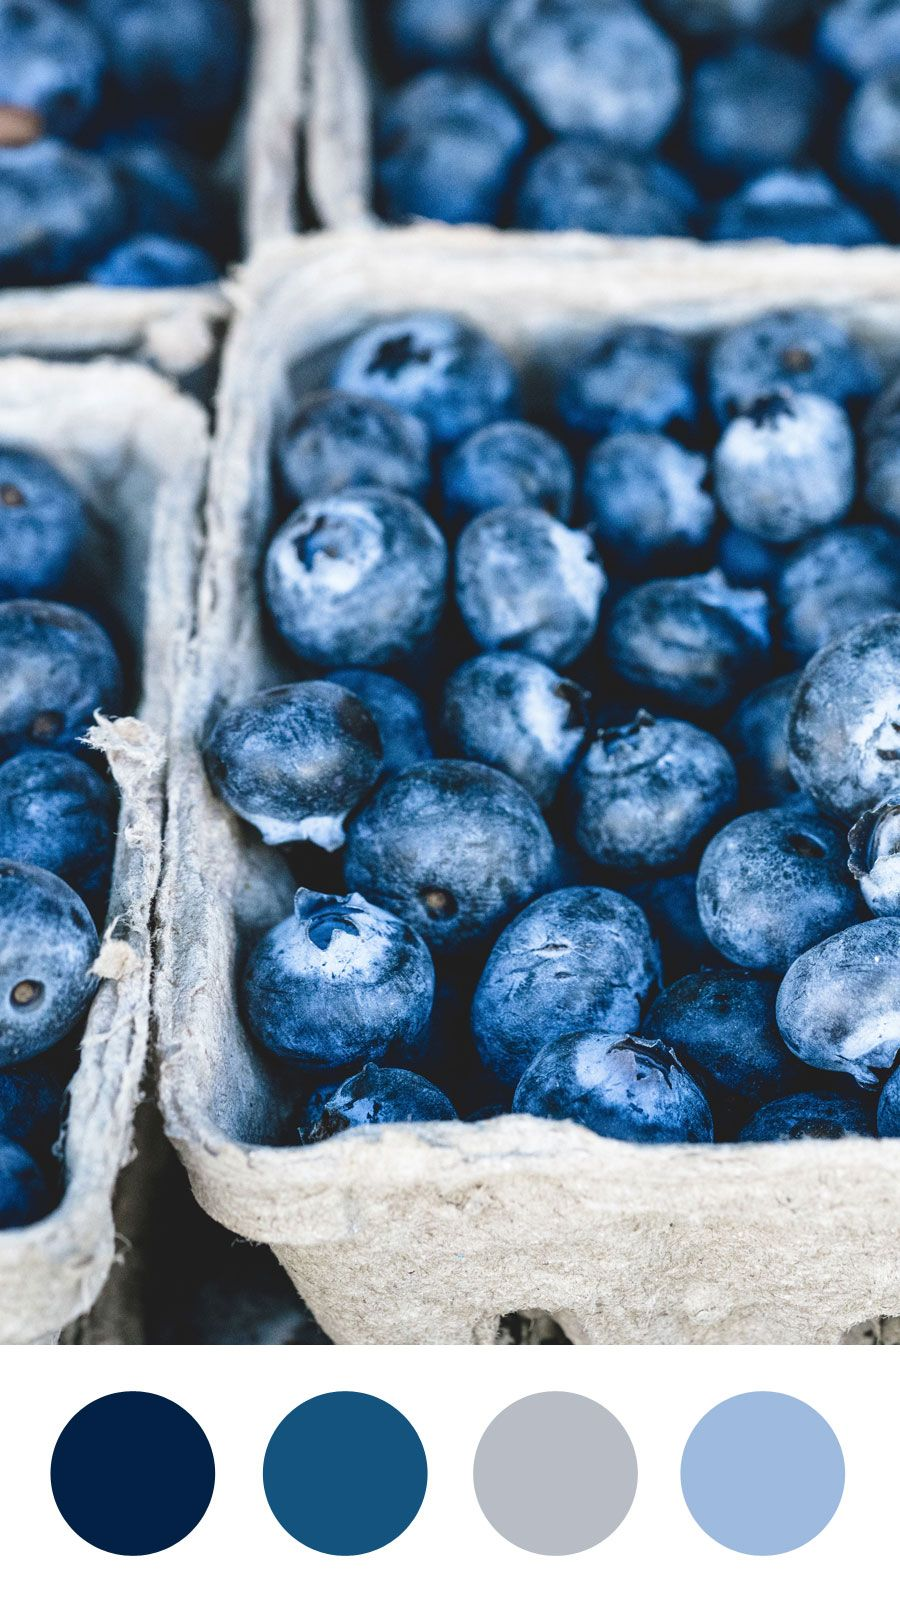 Box of Blueberries Color Palette | Emma Englishby | Navy, cobalt blue and sapphire blue color palette